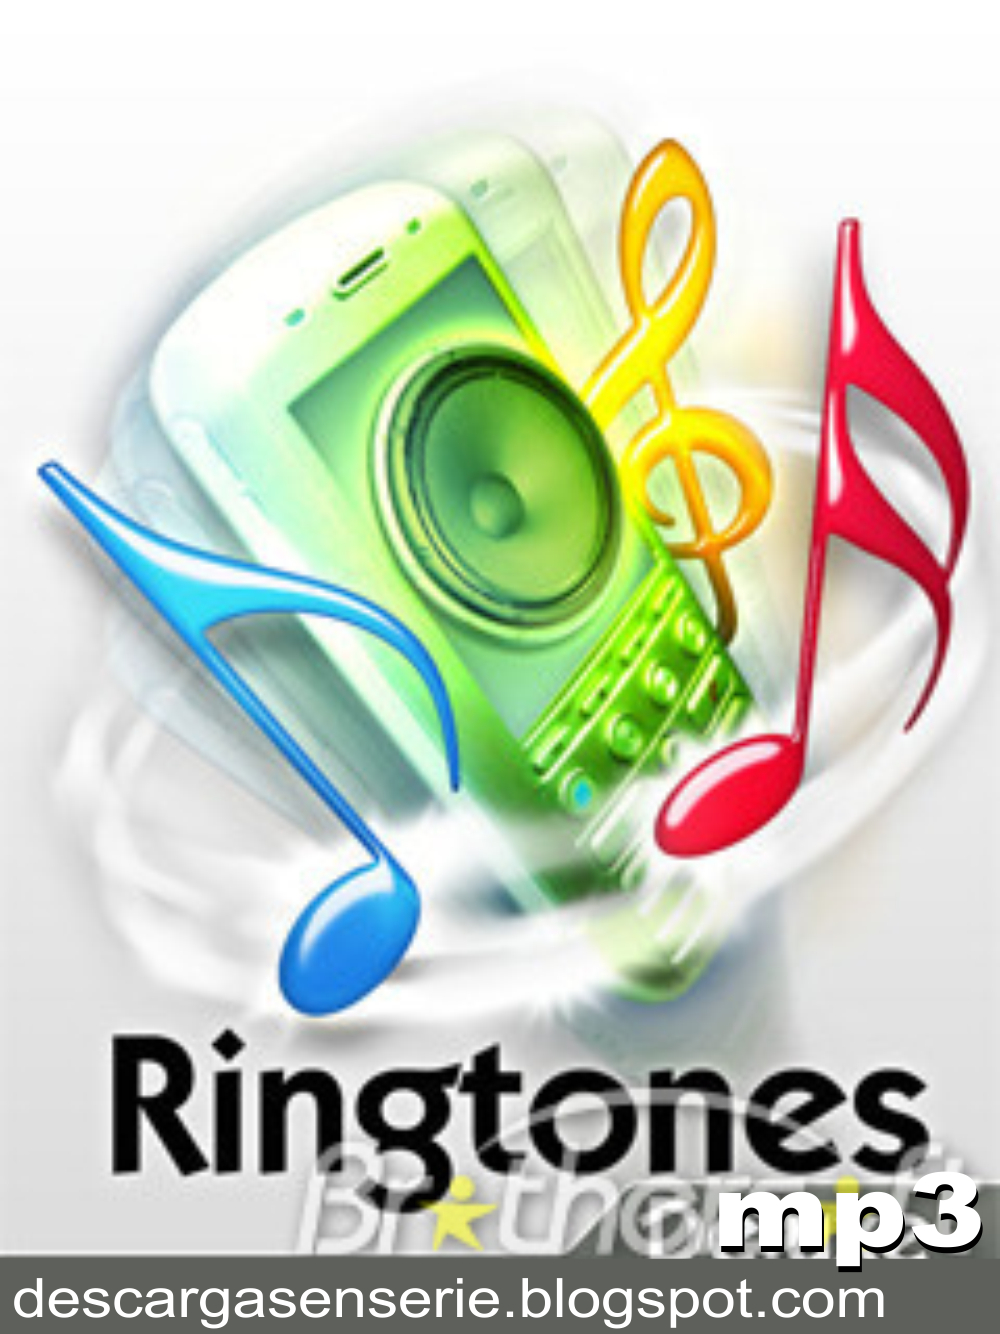 Mp3 ringtones free download.